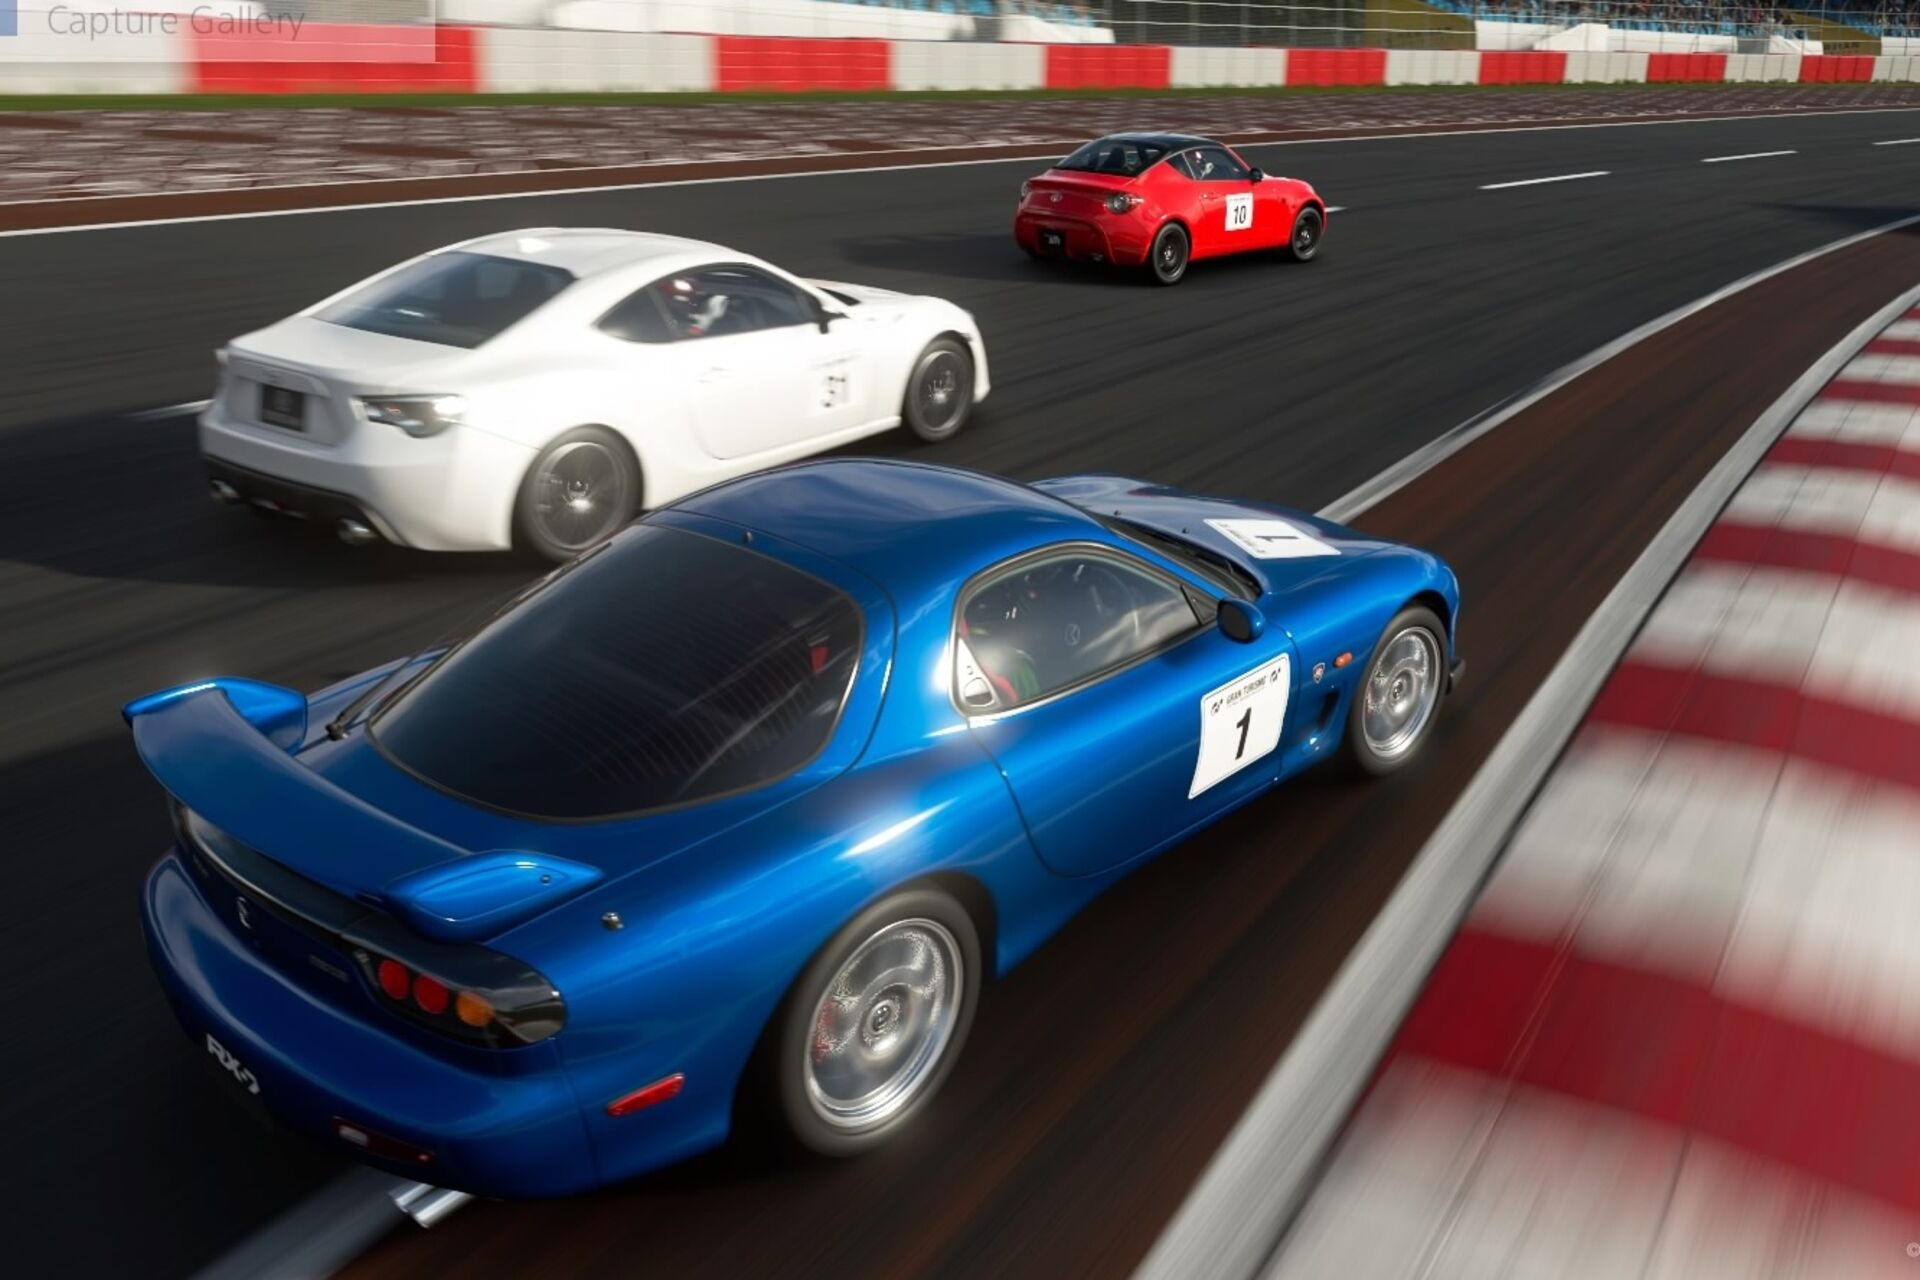 Gt Relax Racer Gran Turismo Sport S Update Brings Back The Game You Thought You